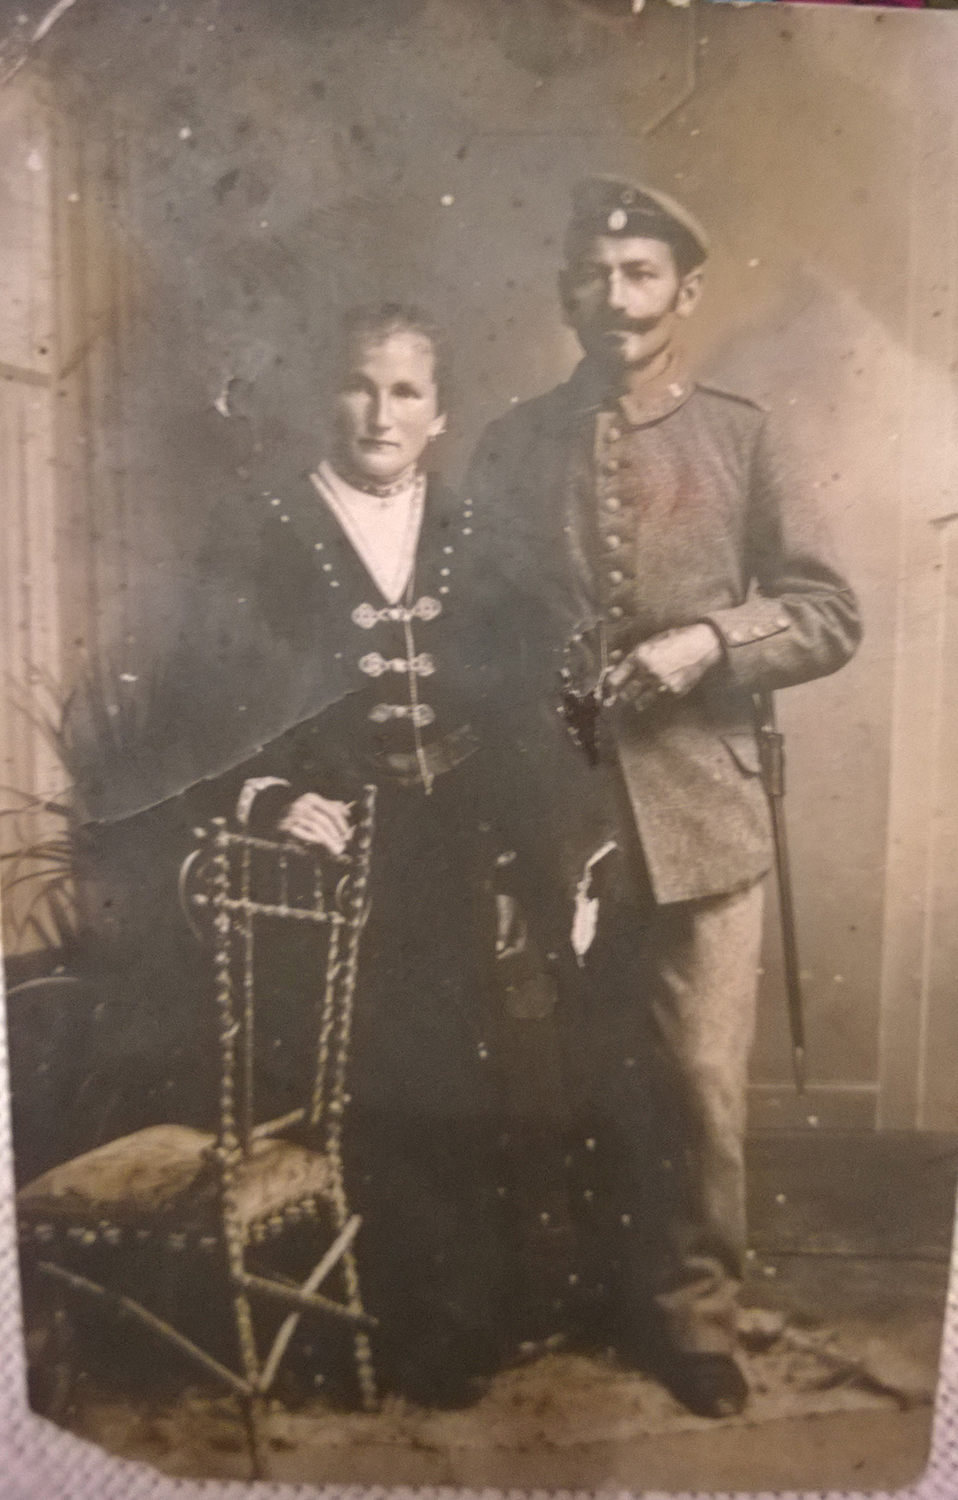 Great grandma & grandpa (Michael who bought Obermondsberg)